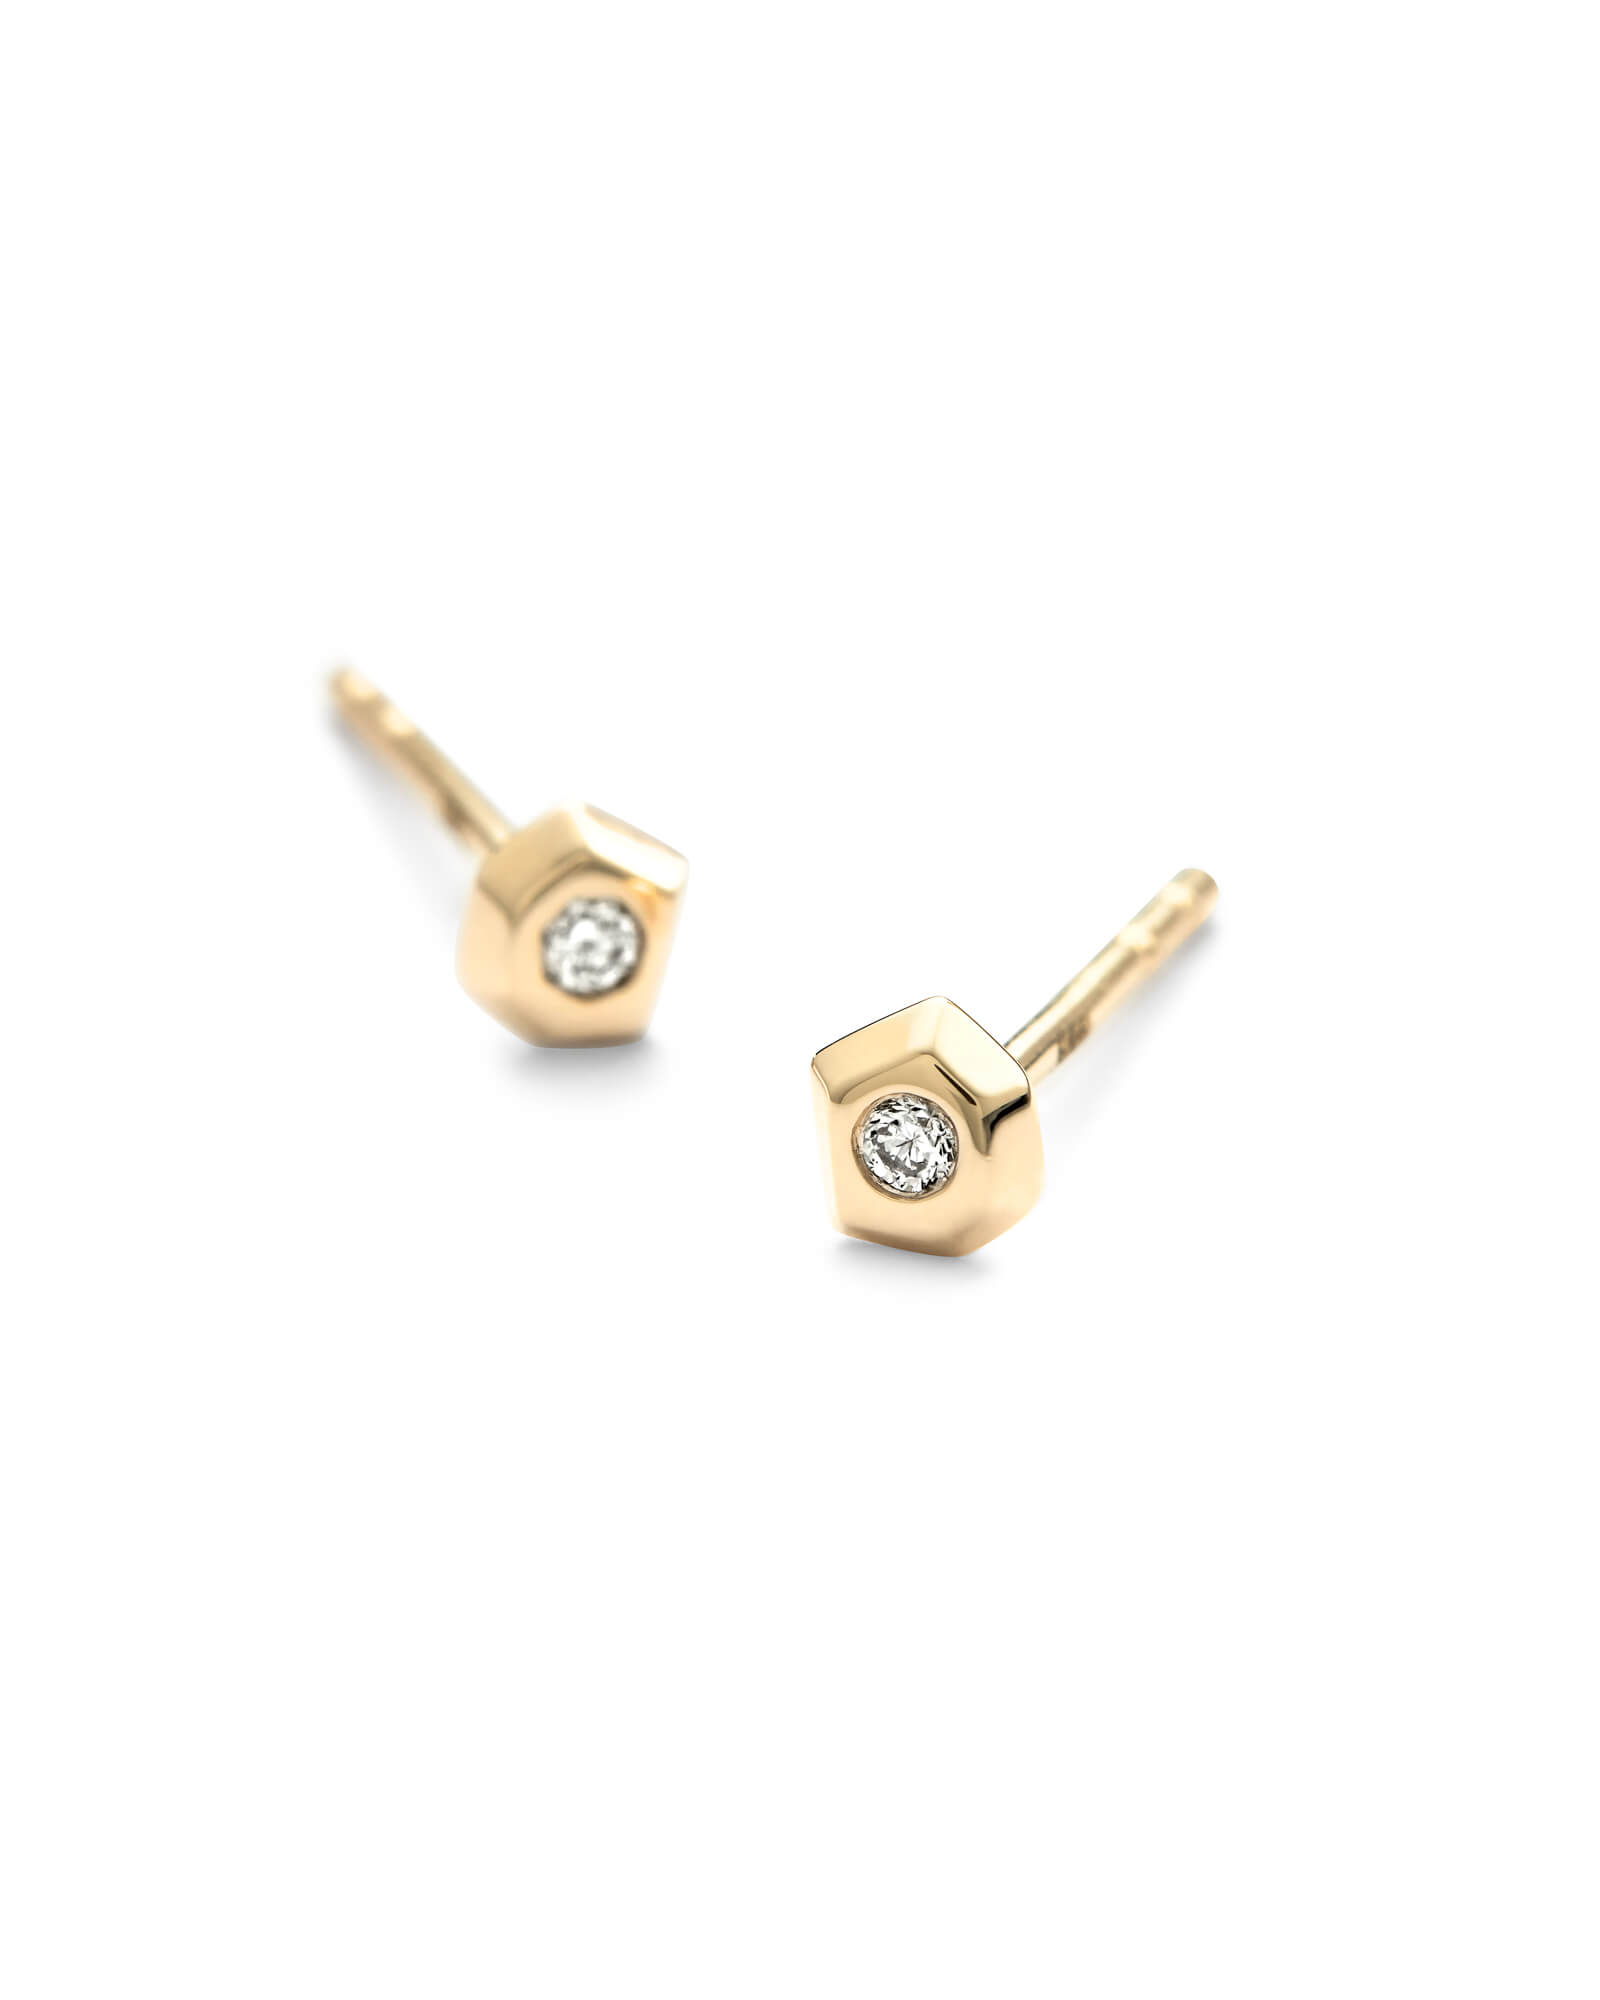 Janiya 14k Yellow Gold Stud Earrings in White Diamond